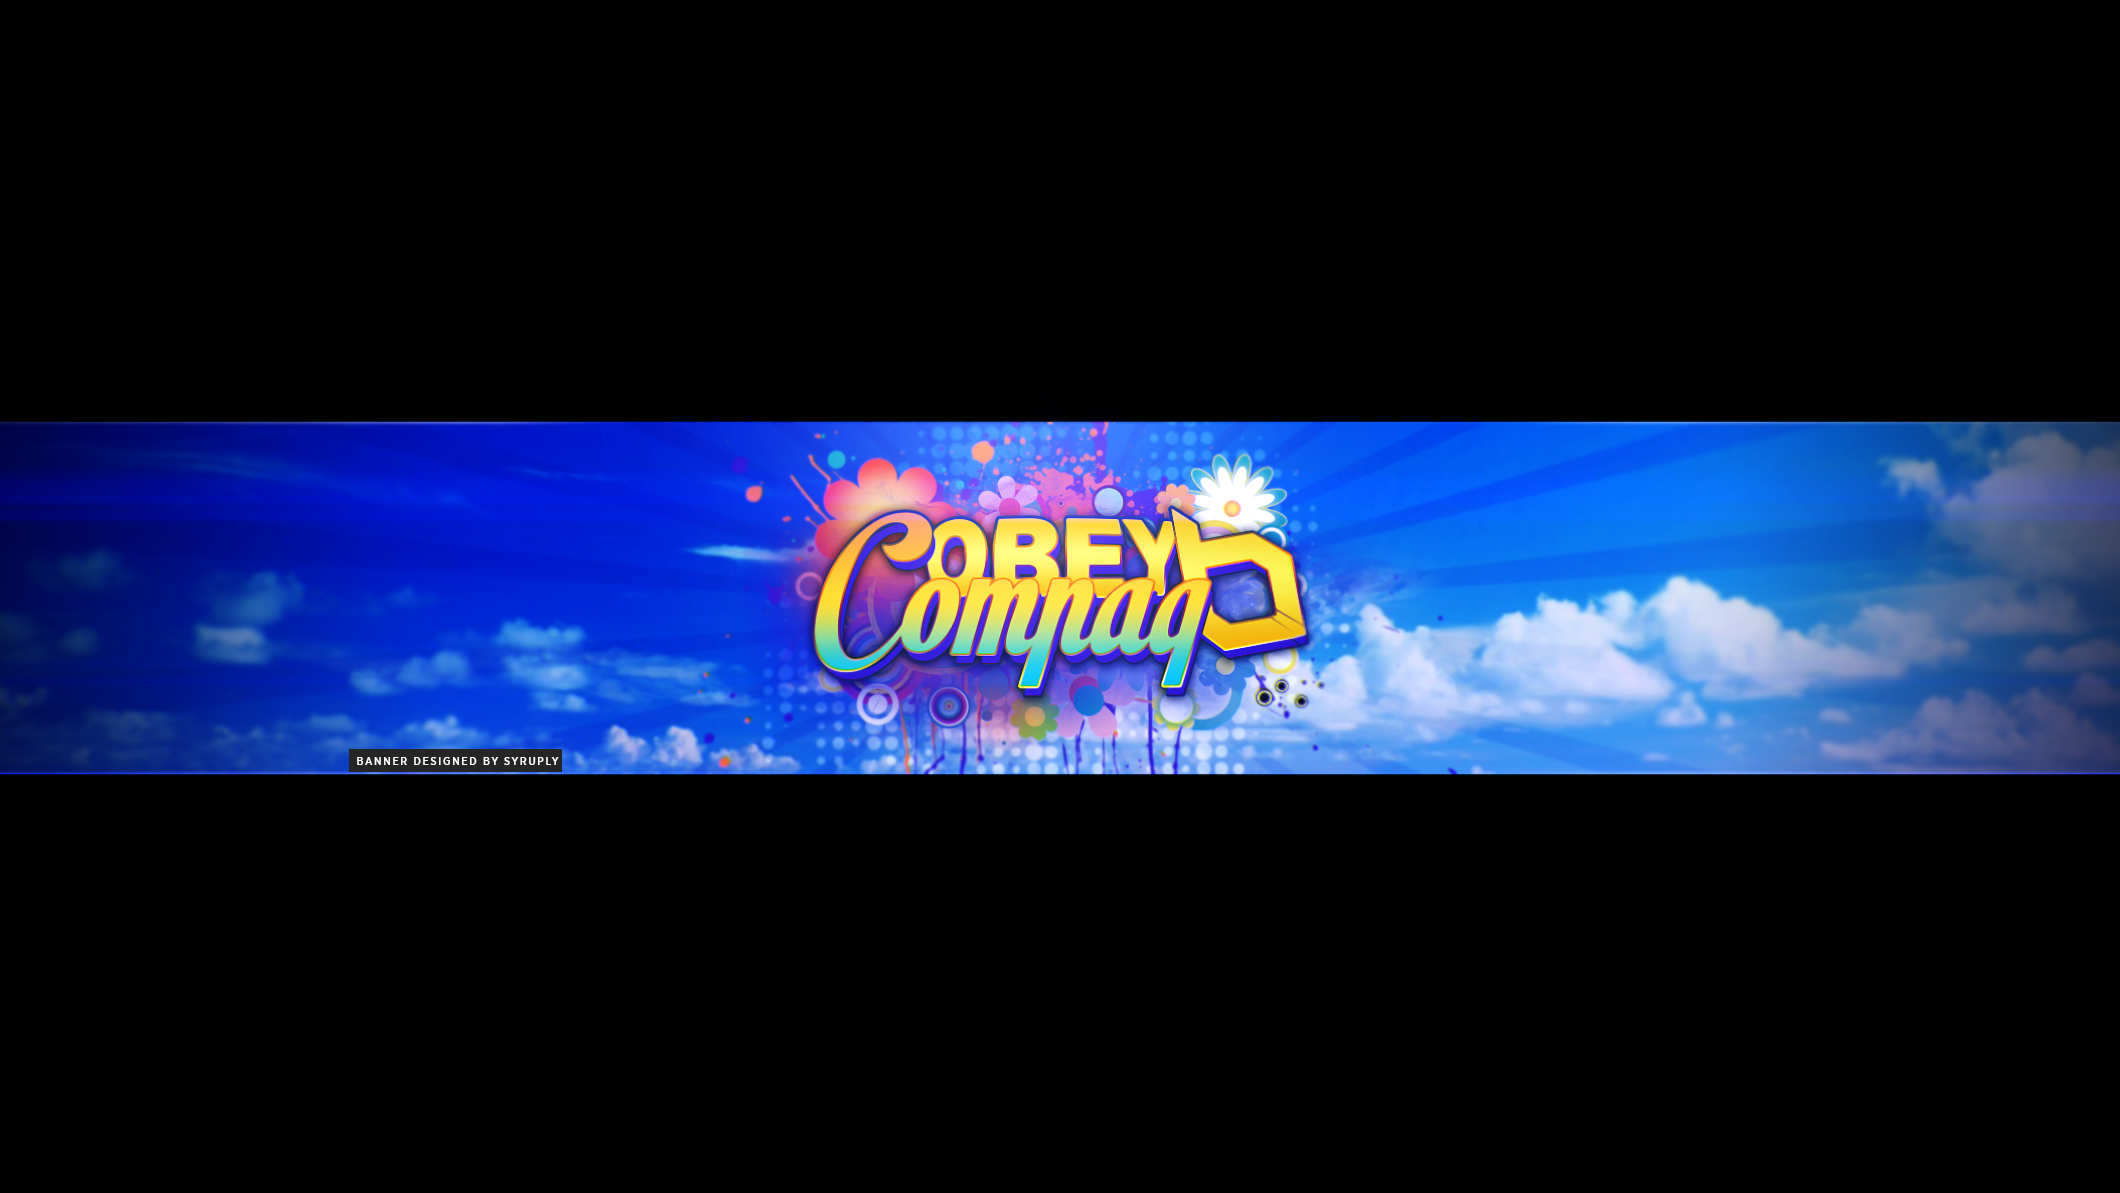 YouTube Banners by Syruply on DeviantArt